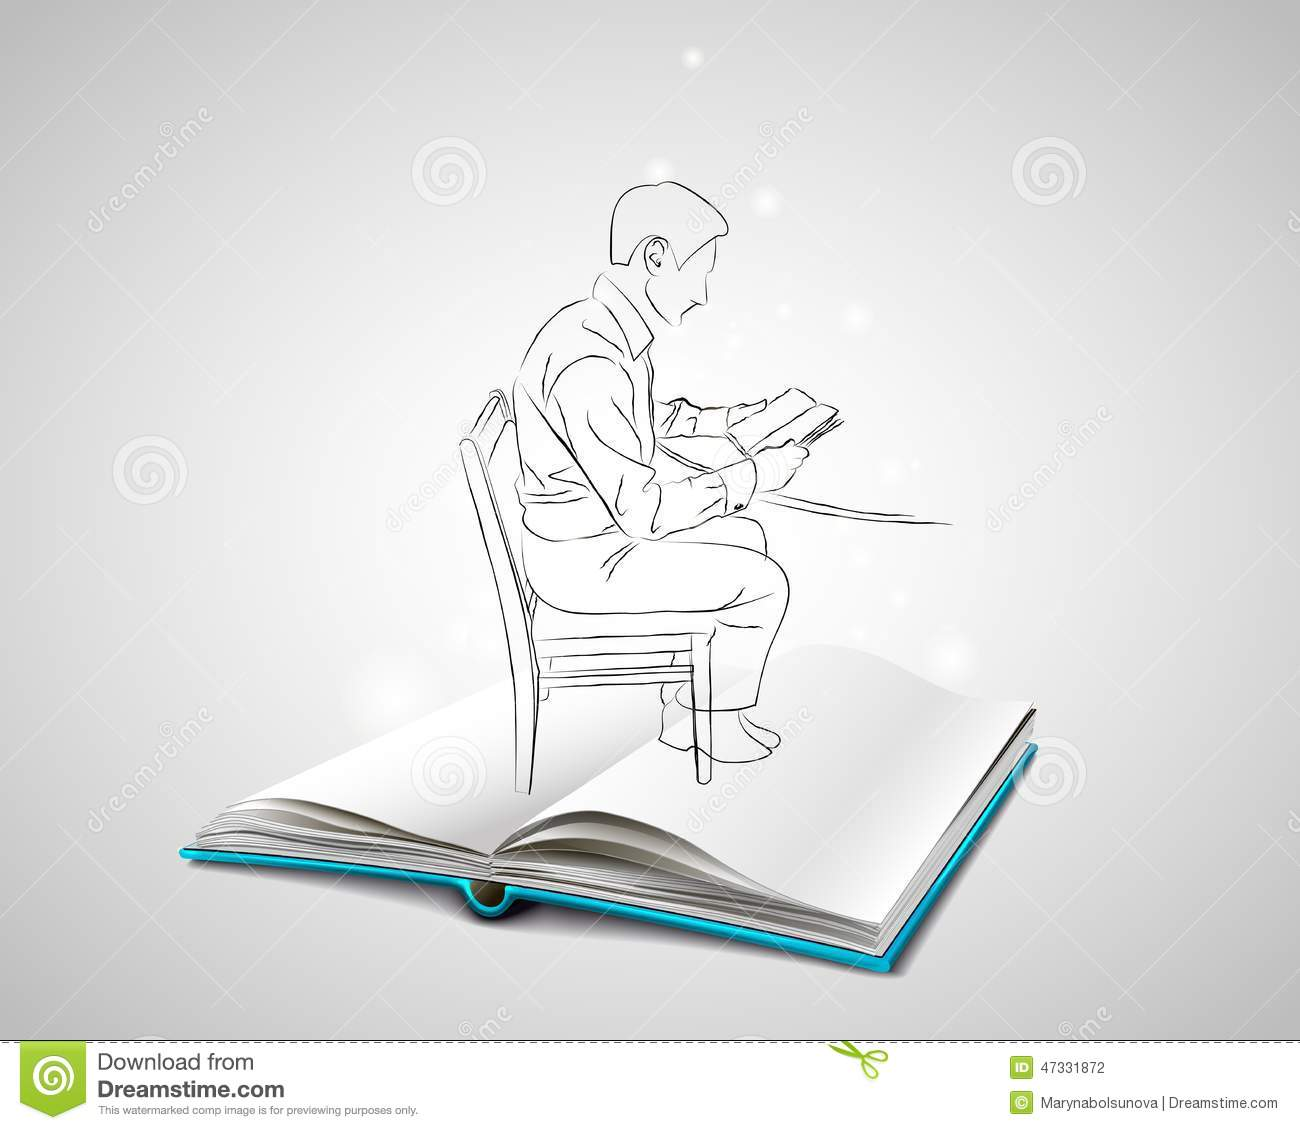 Man sitting in chair drawing - Blue Book Chair Cover Doodle Man Open Sitting Sketch Table Drawing